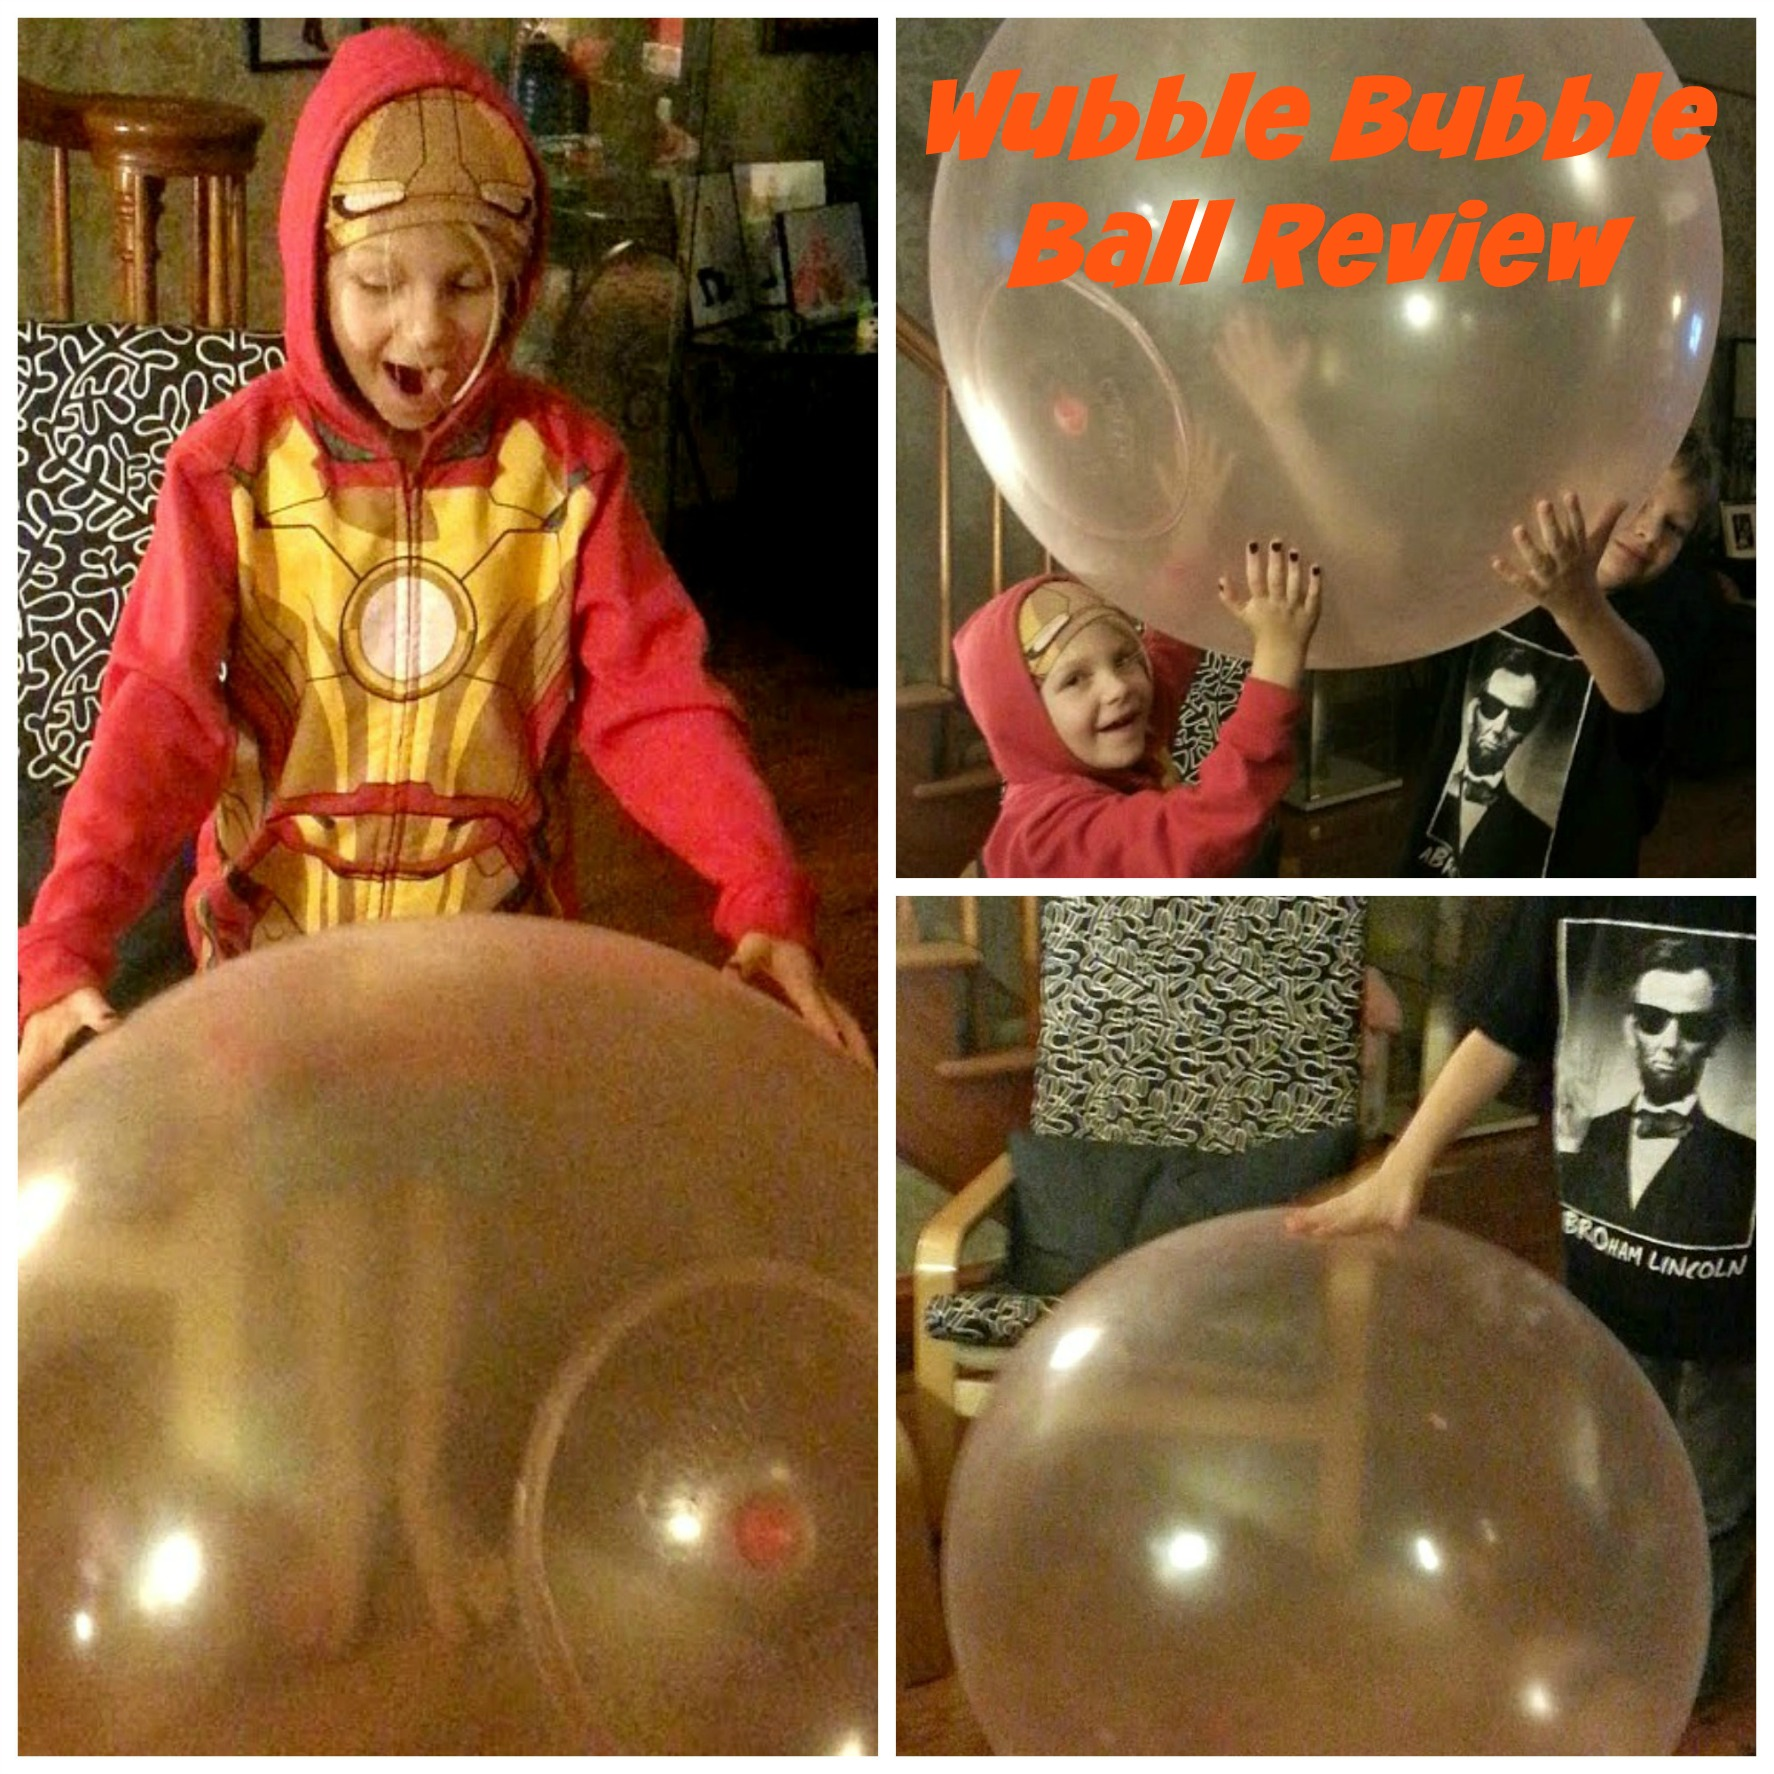 wubble-bubble-ball-review